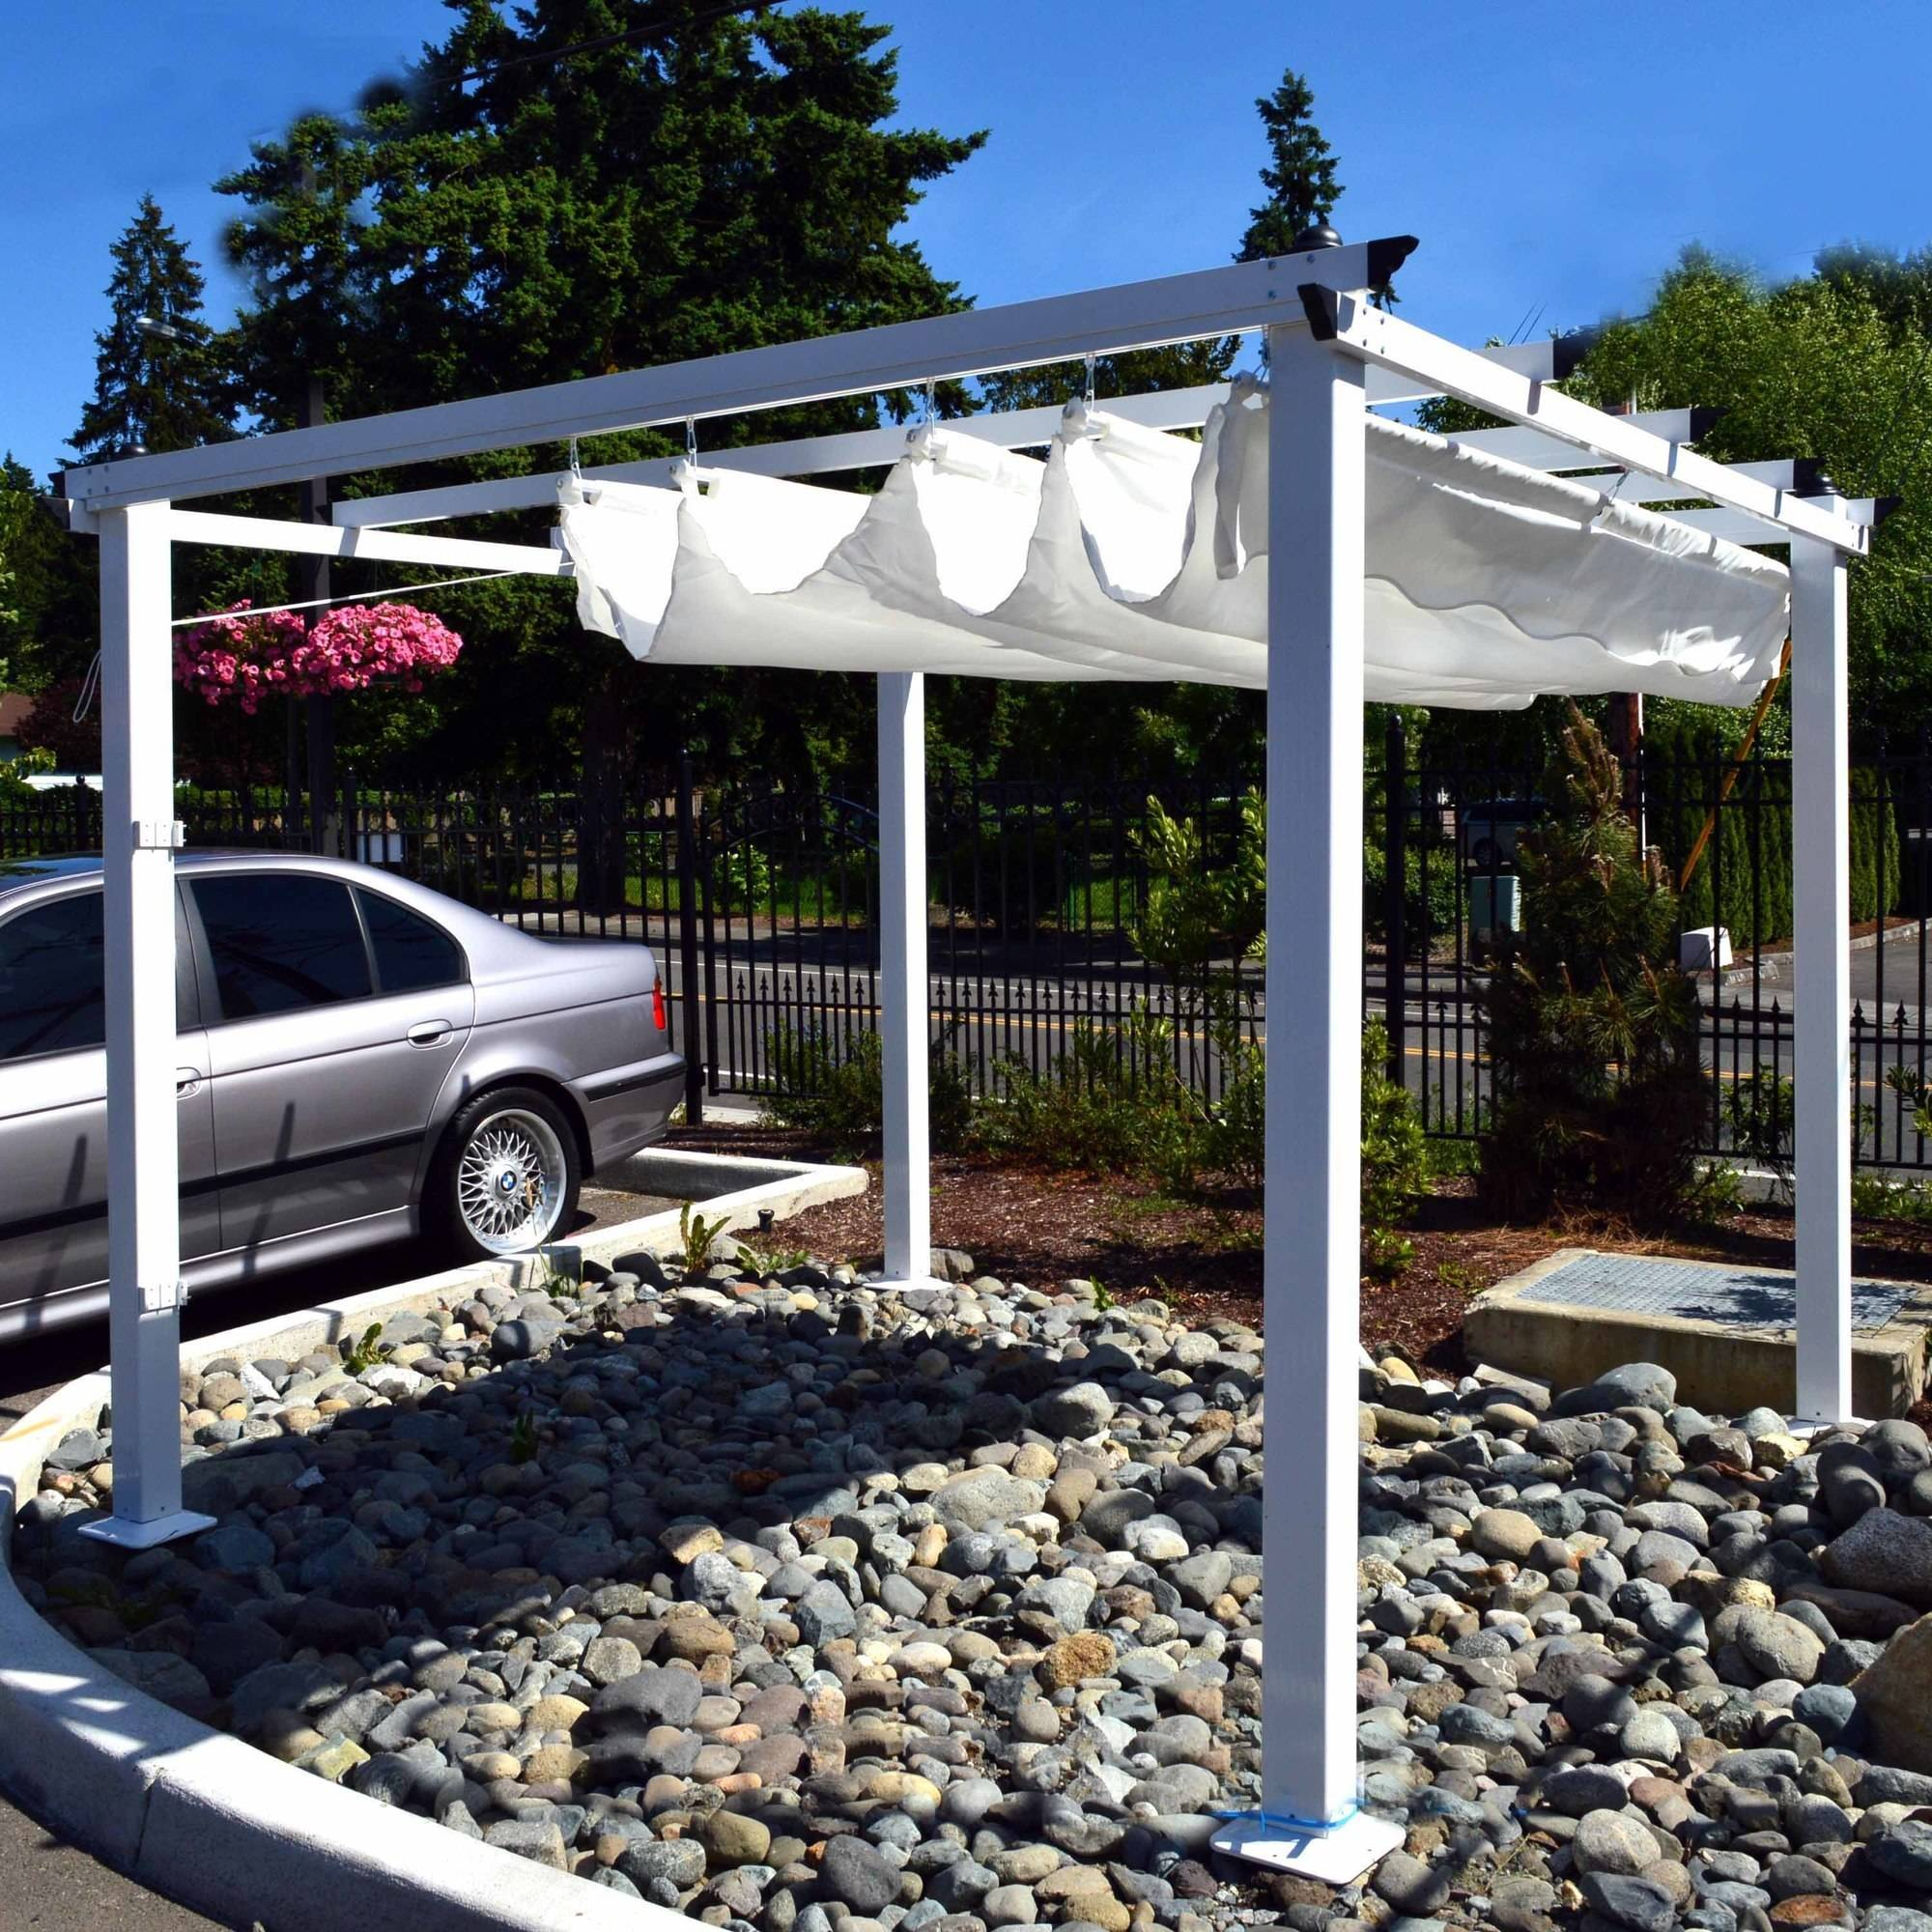 ALEKO 10 x 10 Feet Grape Trellis Pergola Outdoor Canopy Gazebo White - Walmart.com & ALEKO 10 x 10 Feet Grape Trellis Pergola Outdoor Canopy Gazebo ...